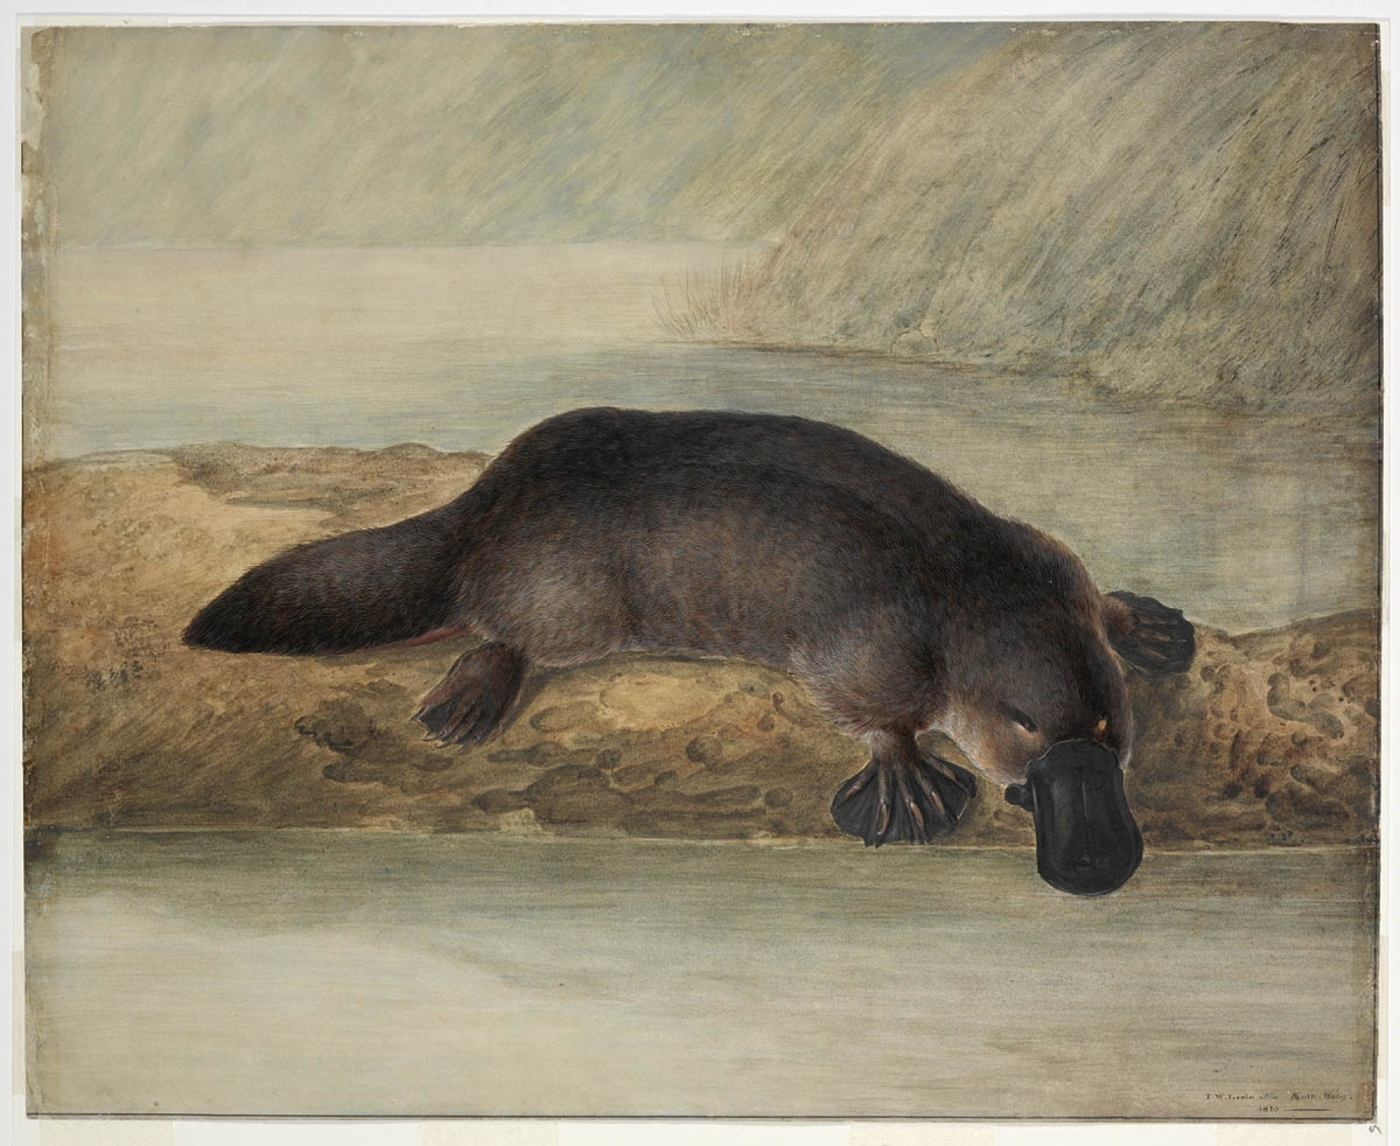 Animal known as the platypus is on a rock with it's beak towards the water